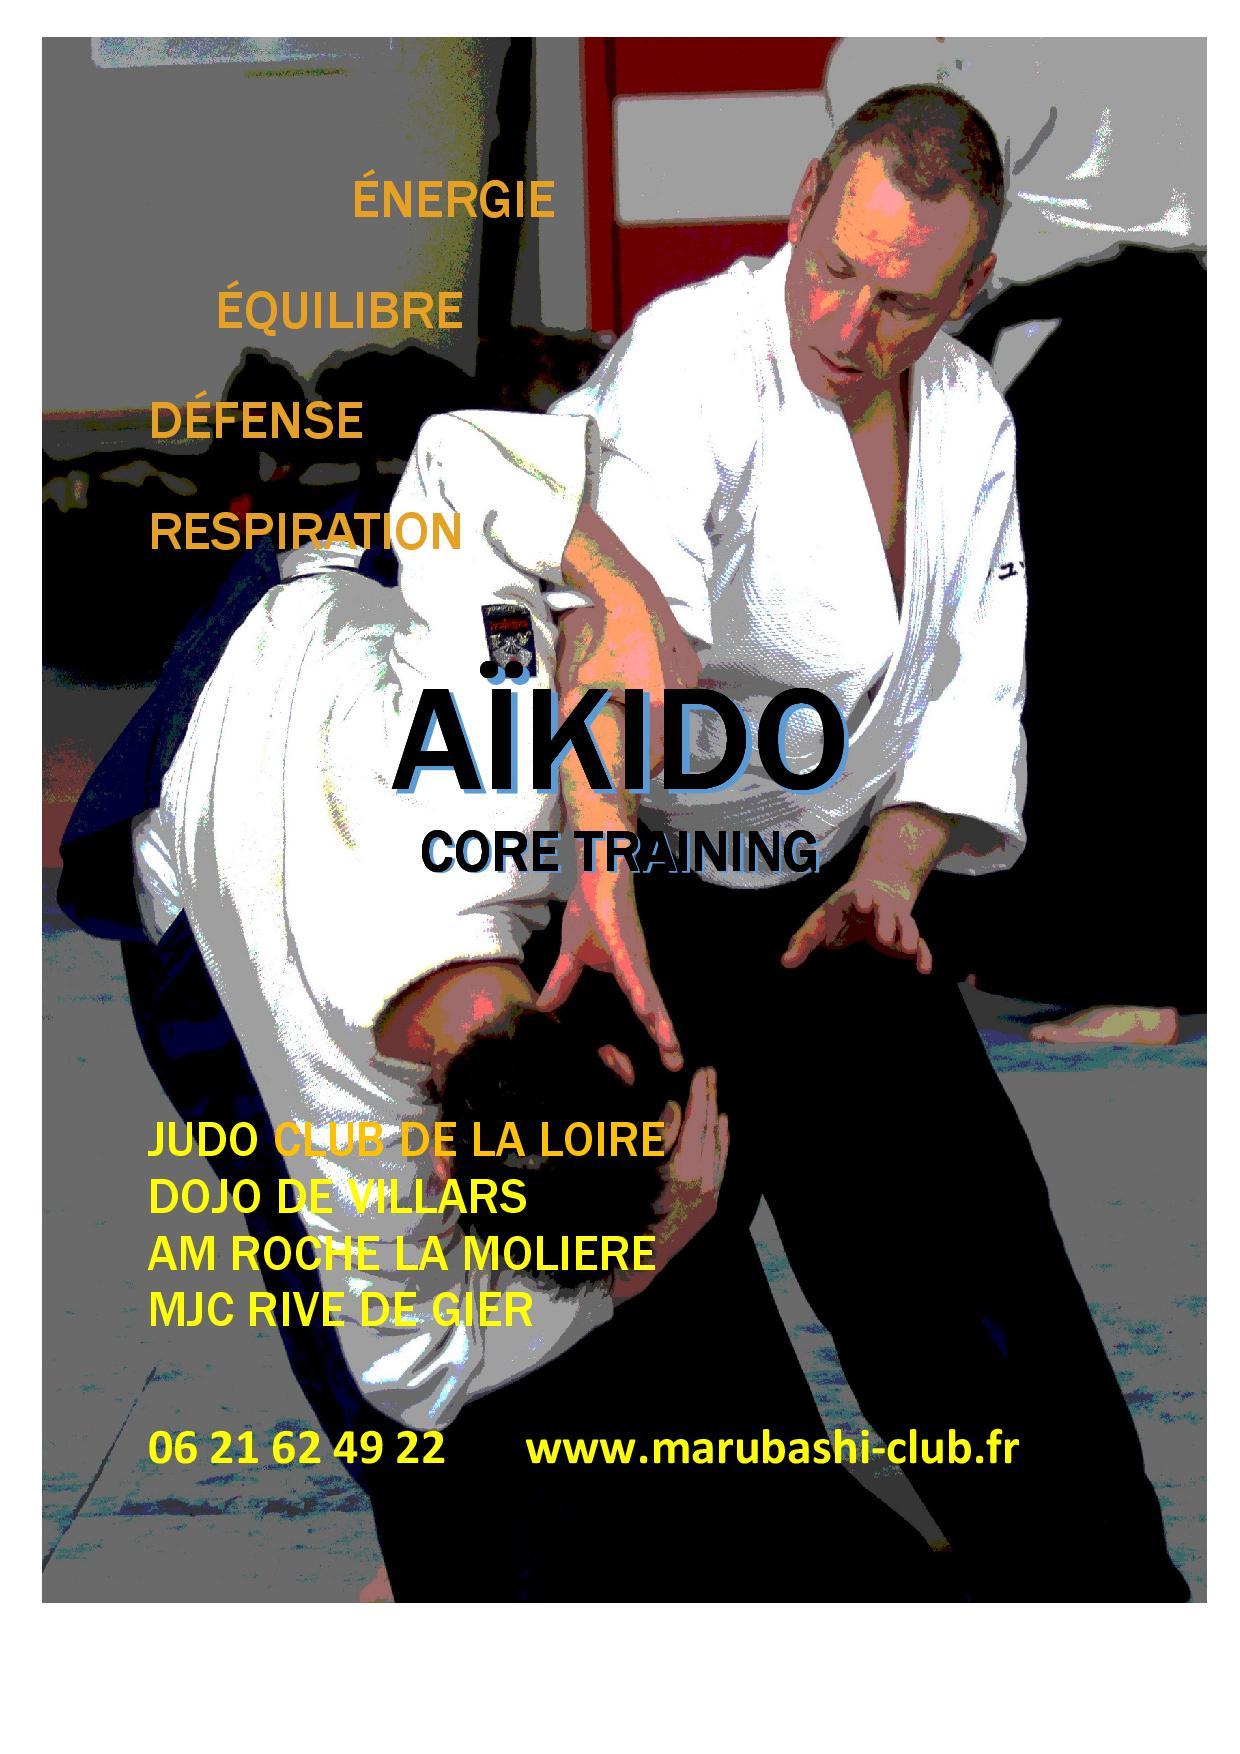 AÏKIDO core training – 04 77 33 61 97- 06 21 62 49 22